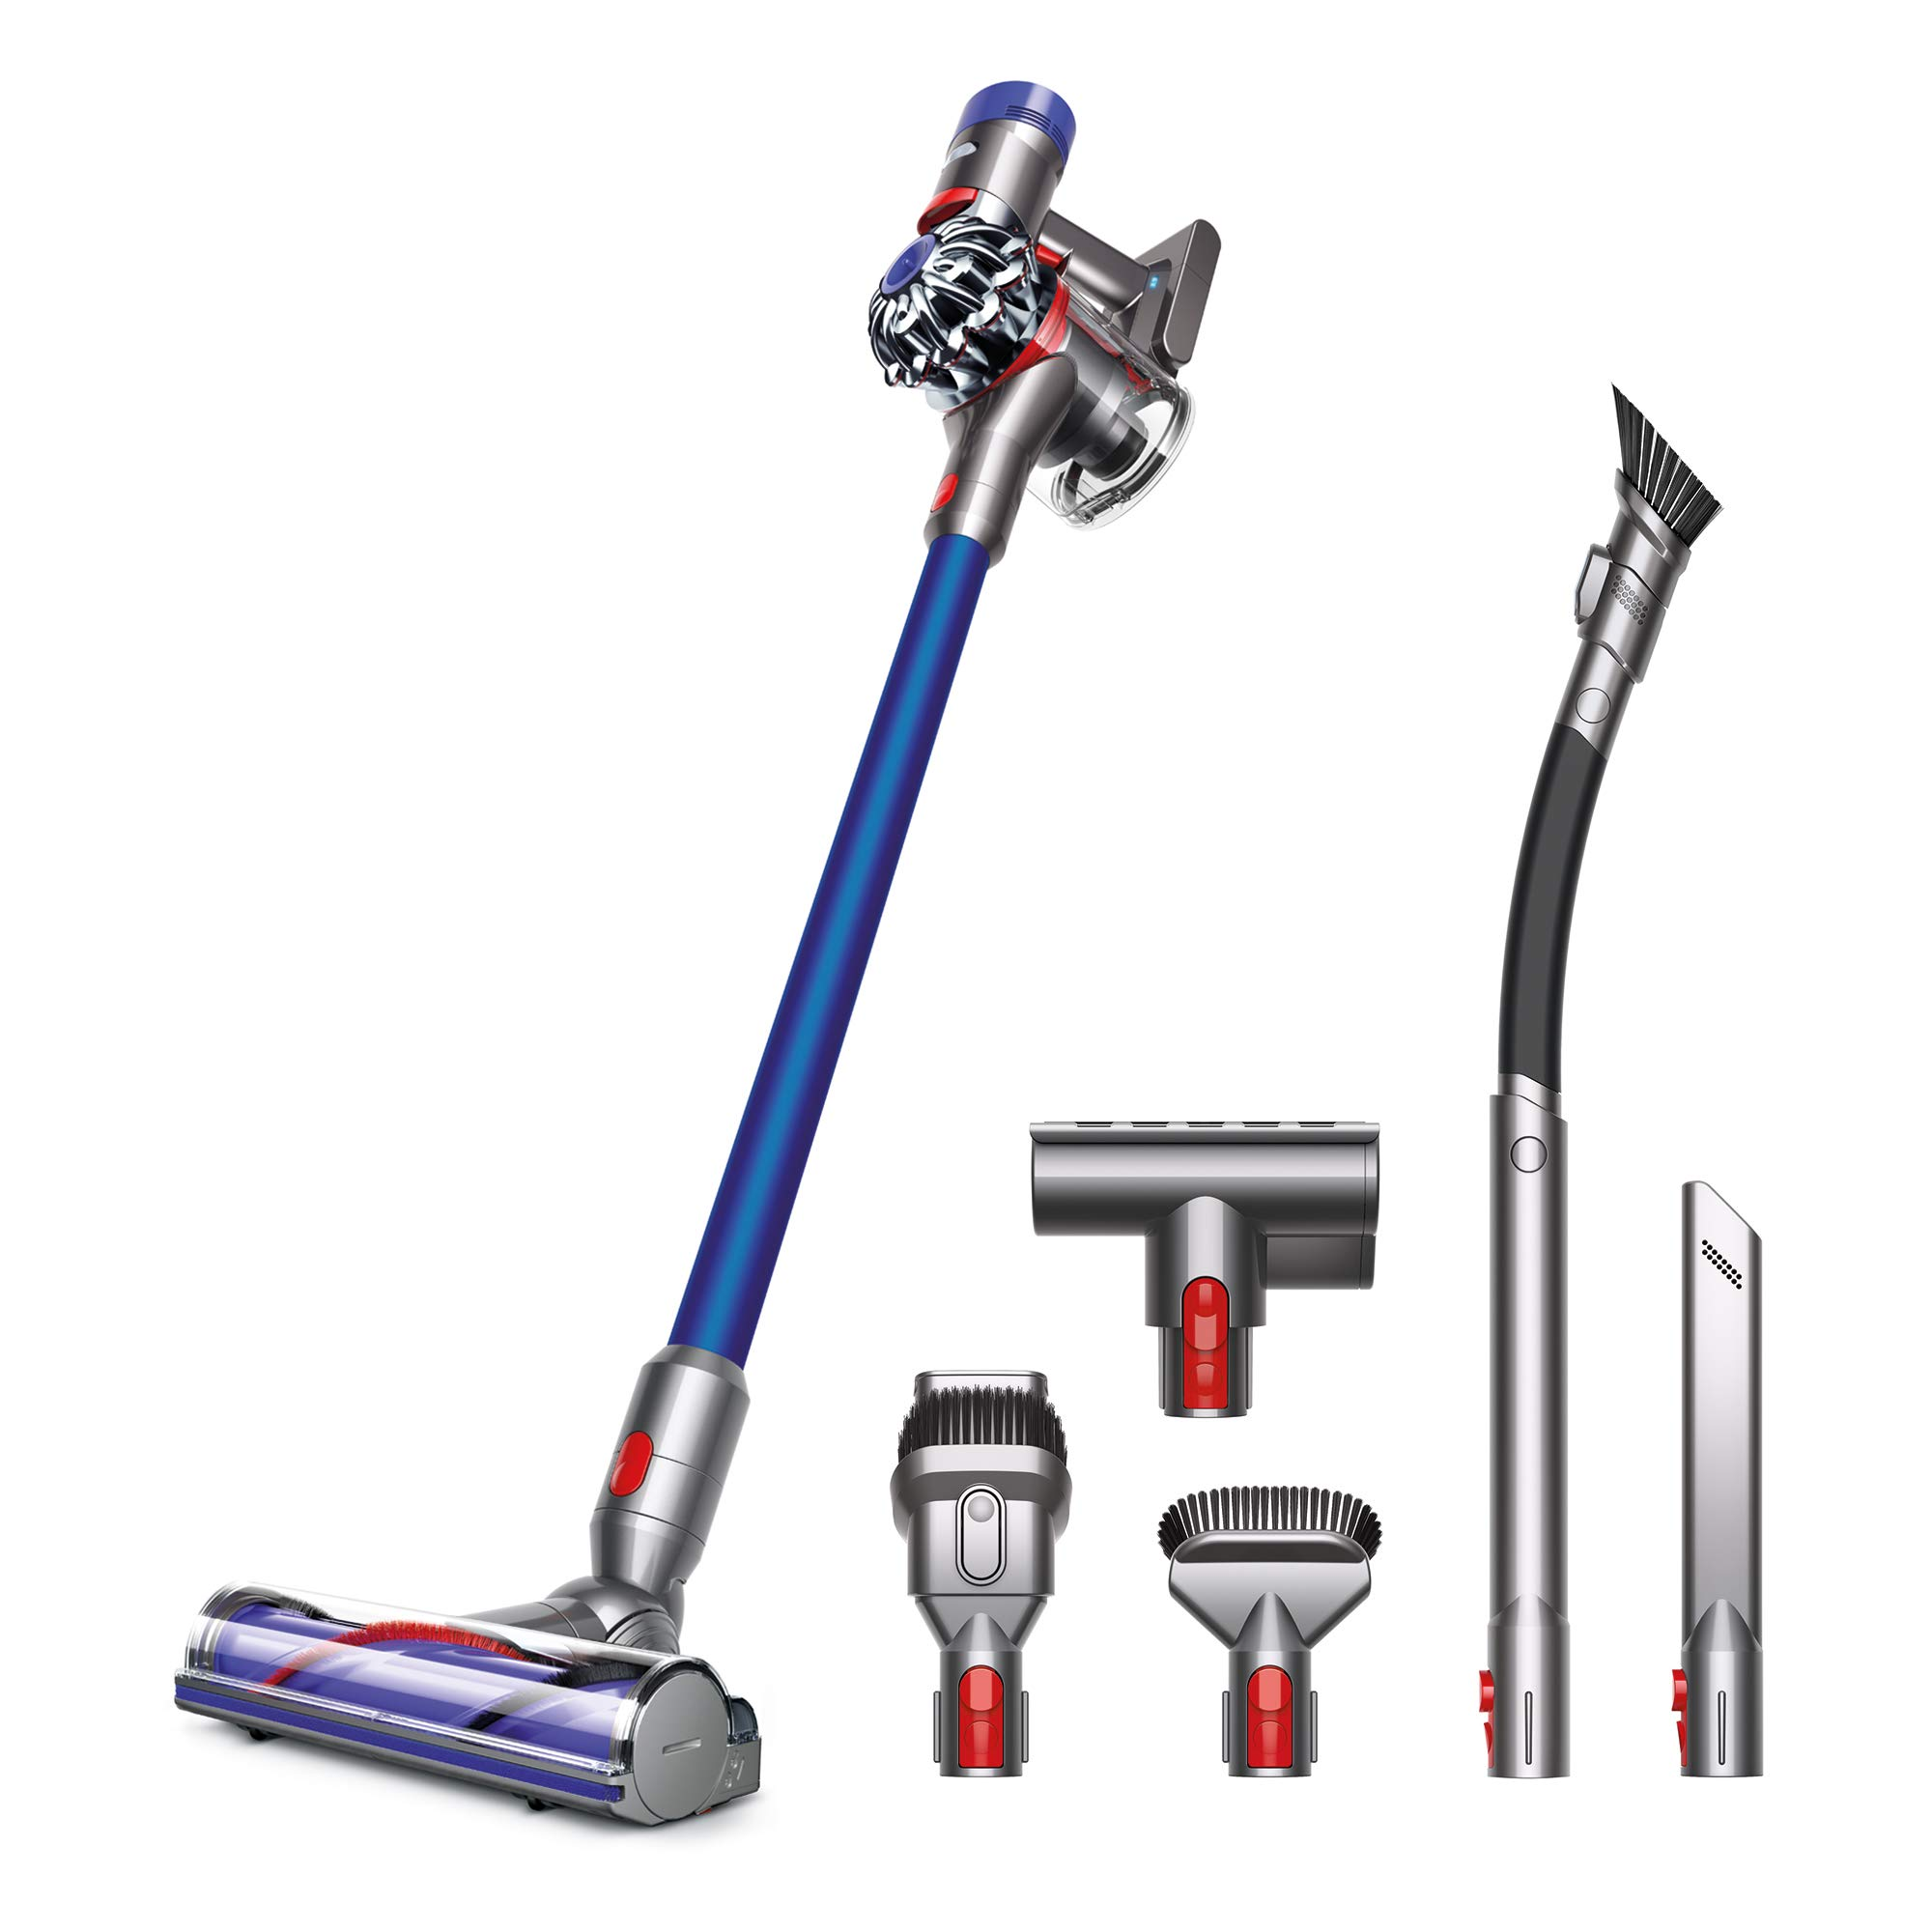 Dyson V7 Animal Pro+ Cordless Vacuum Cleaner - Extra Tools for Homes with Pets, Rechargeable, Lightweight, Powerful Suction, Blue by Dyson